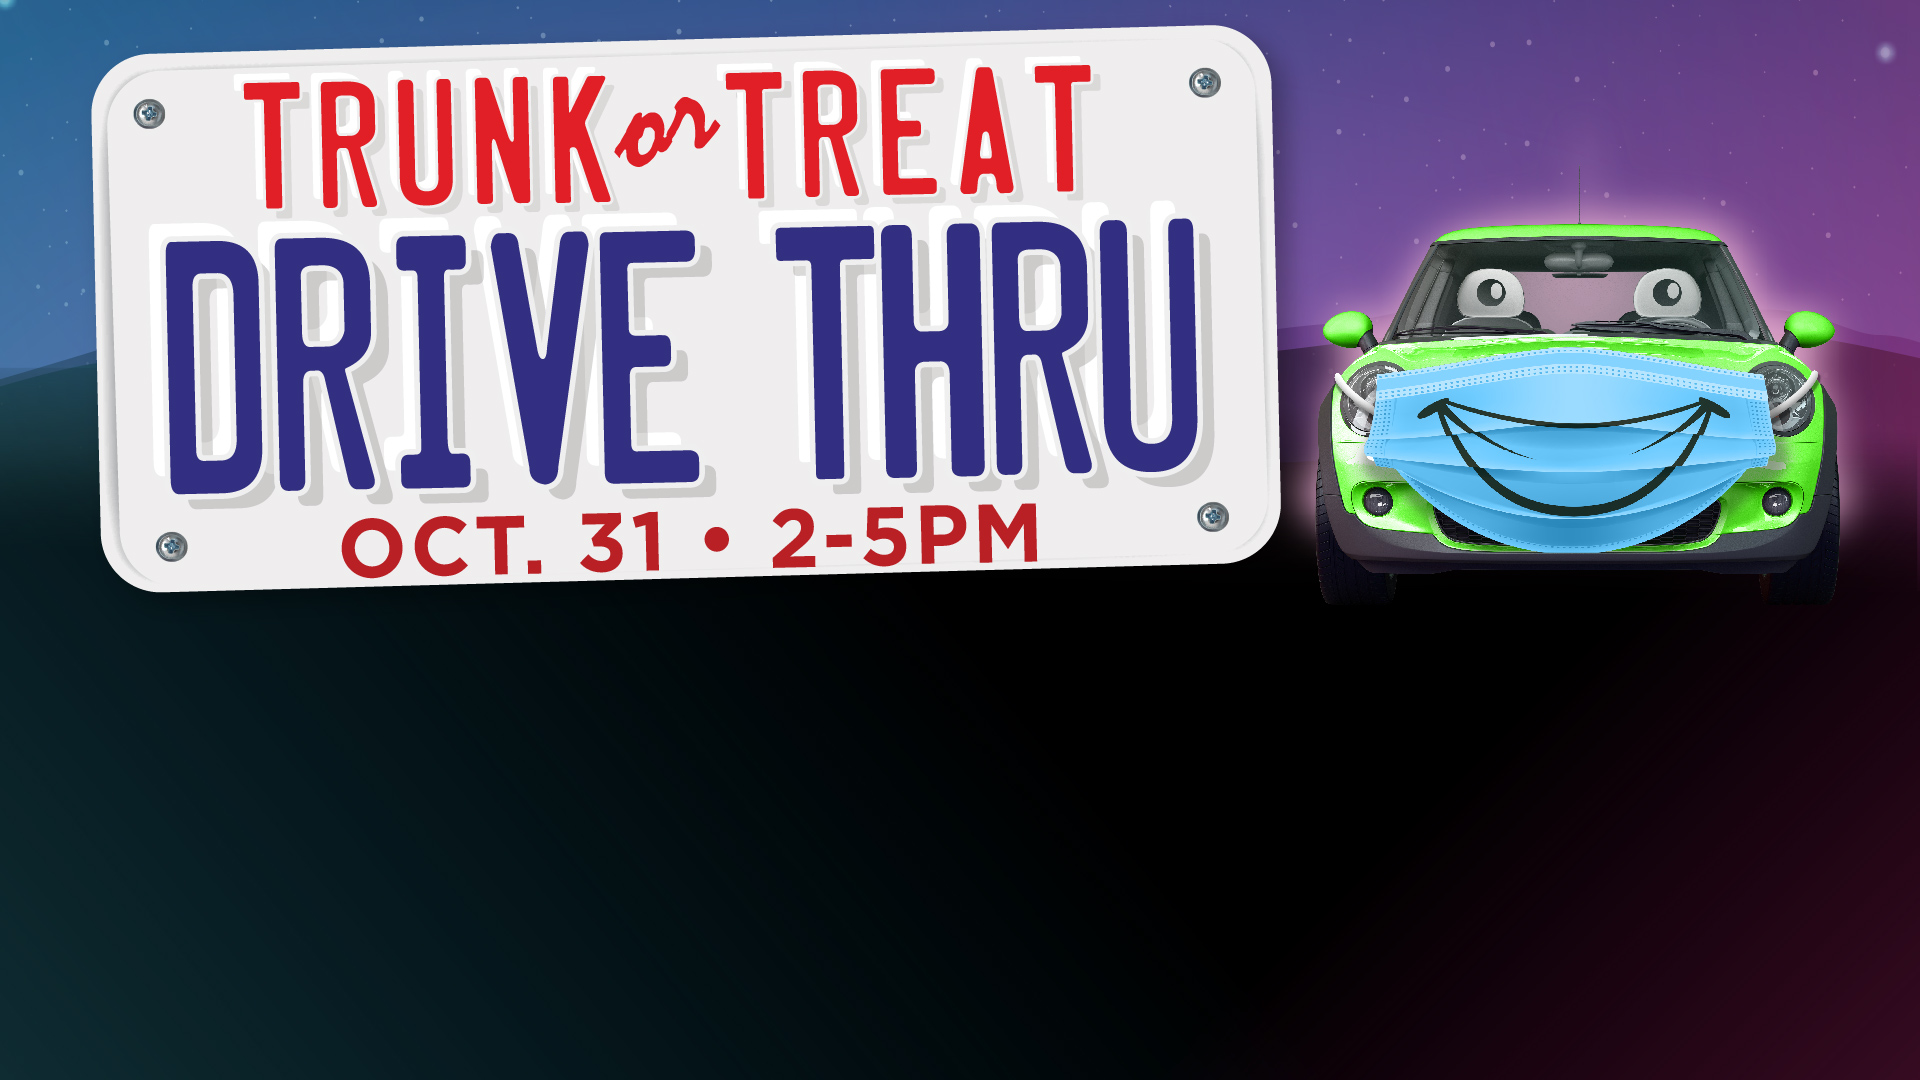 Trunk or Treat Drive Thru